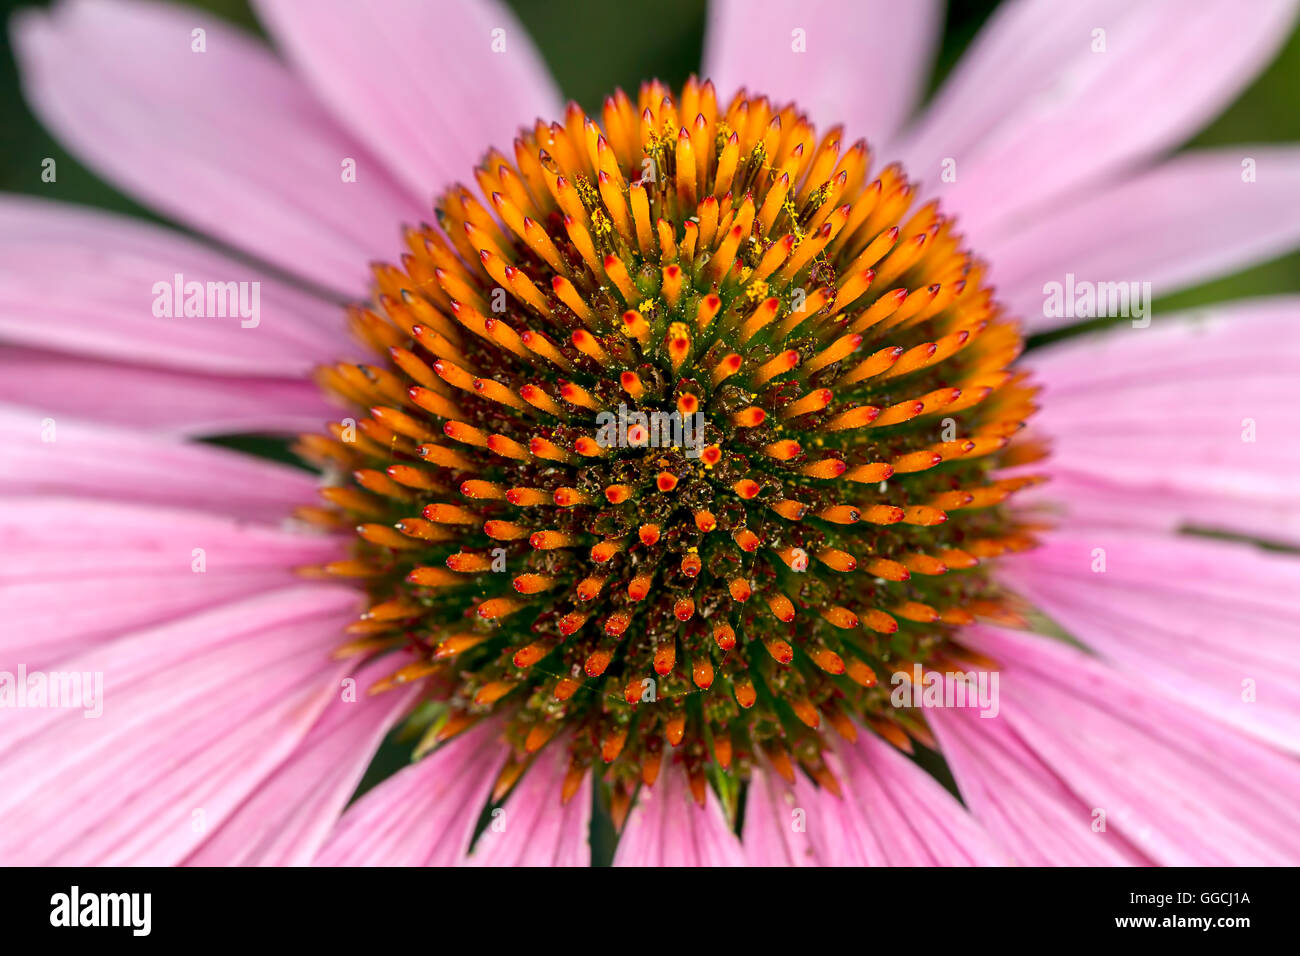 Abstract view of cone flower. - Stock Image